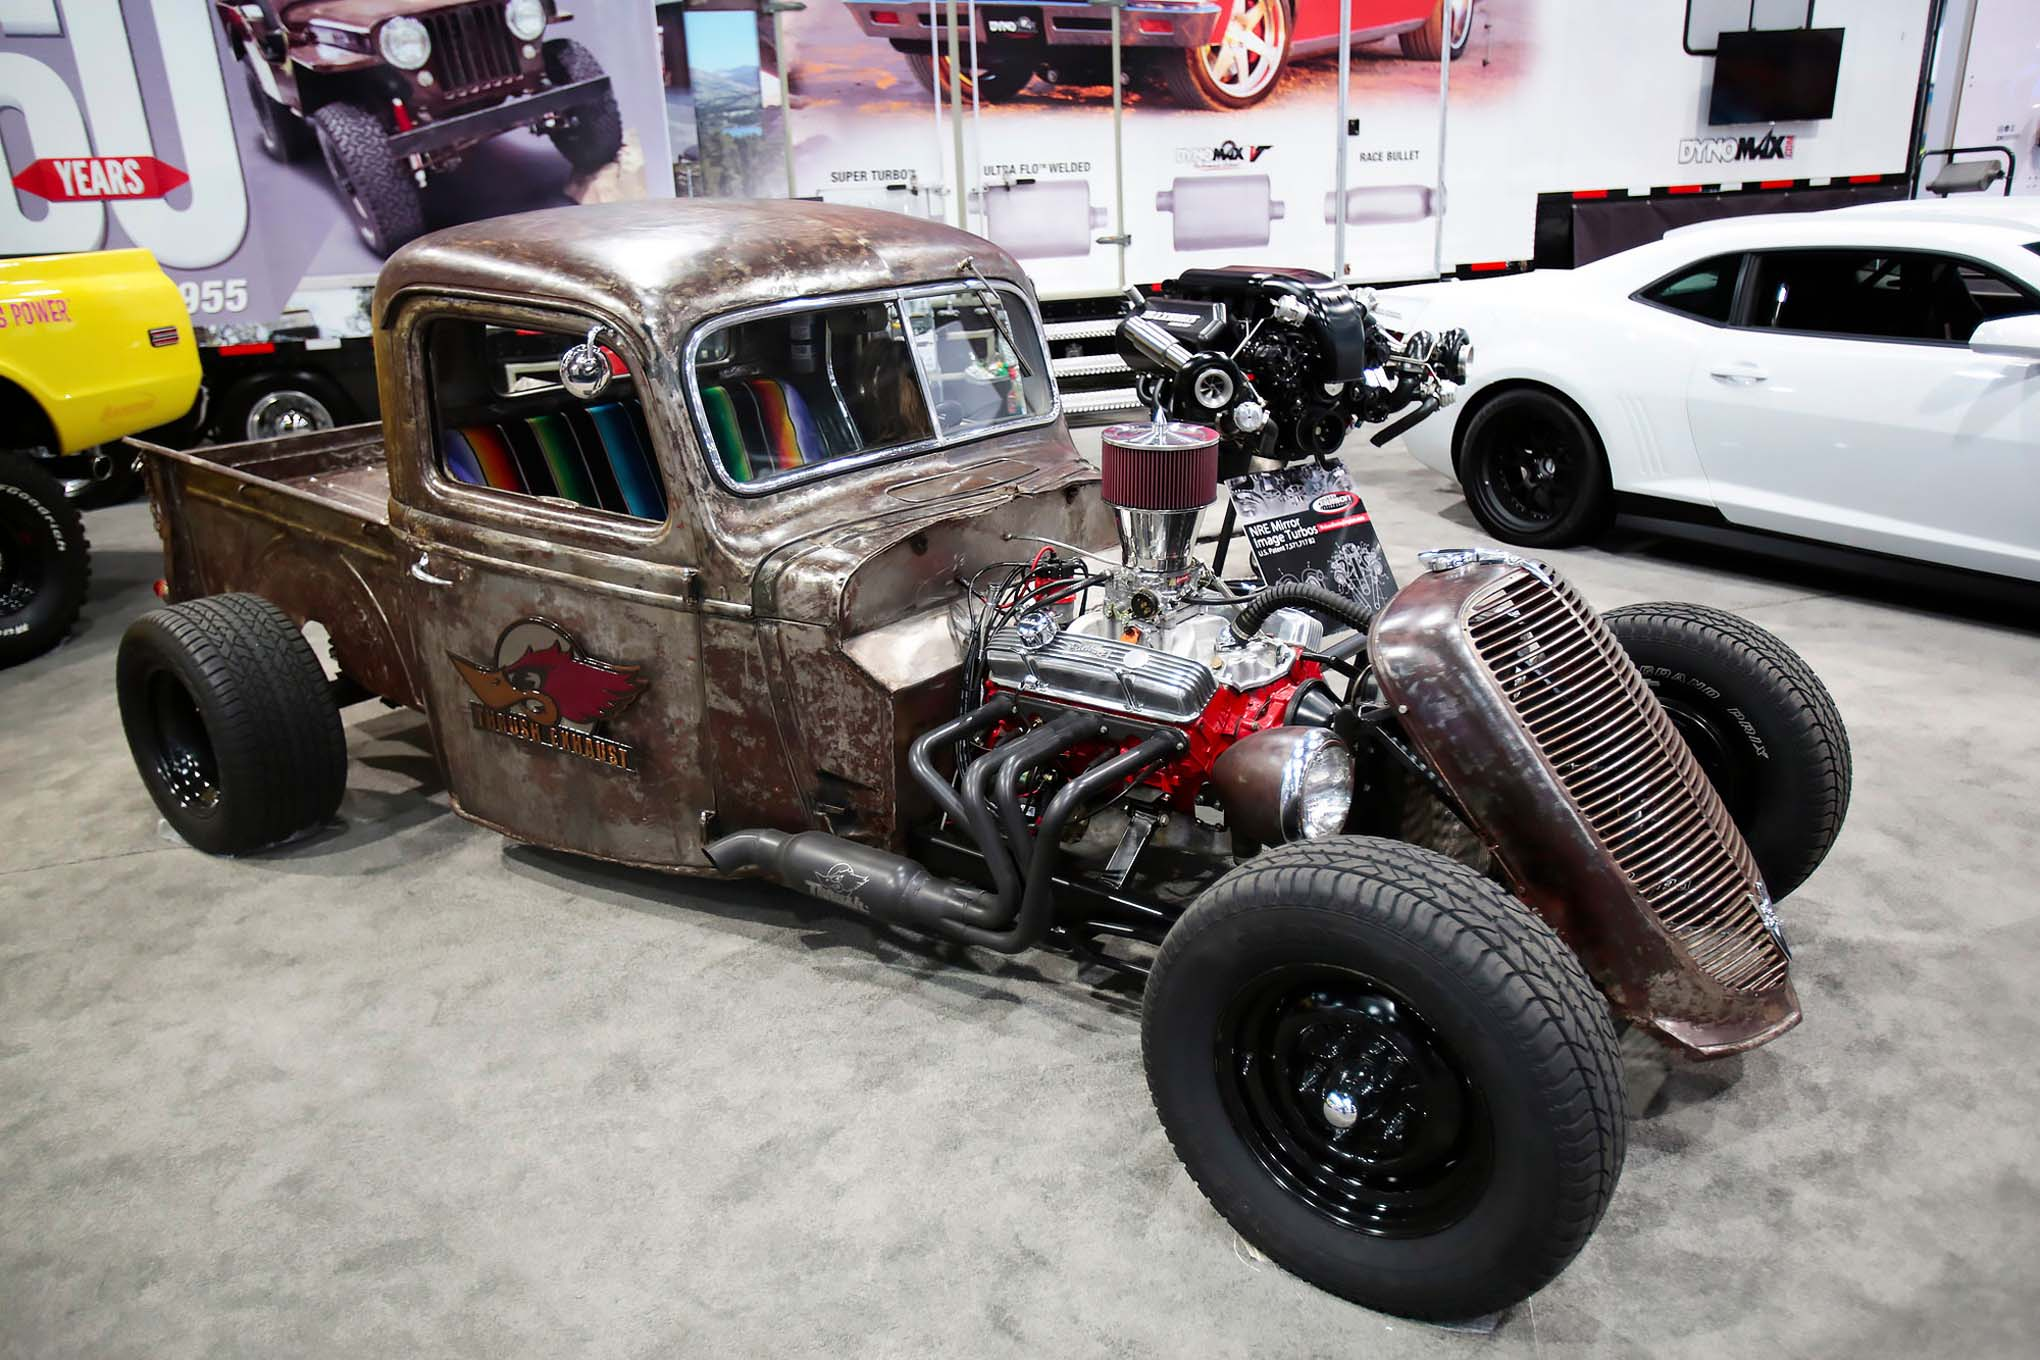 SEMA 2015 After Hours Photo Gallery 161 Lpr